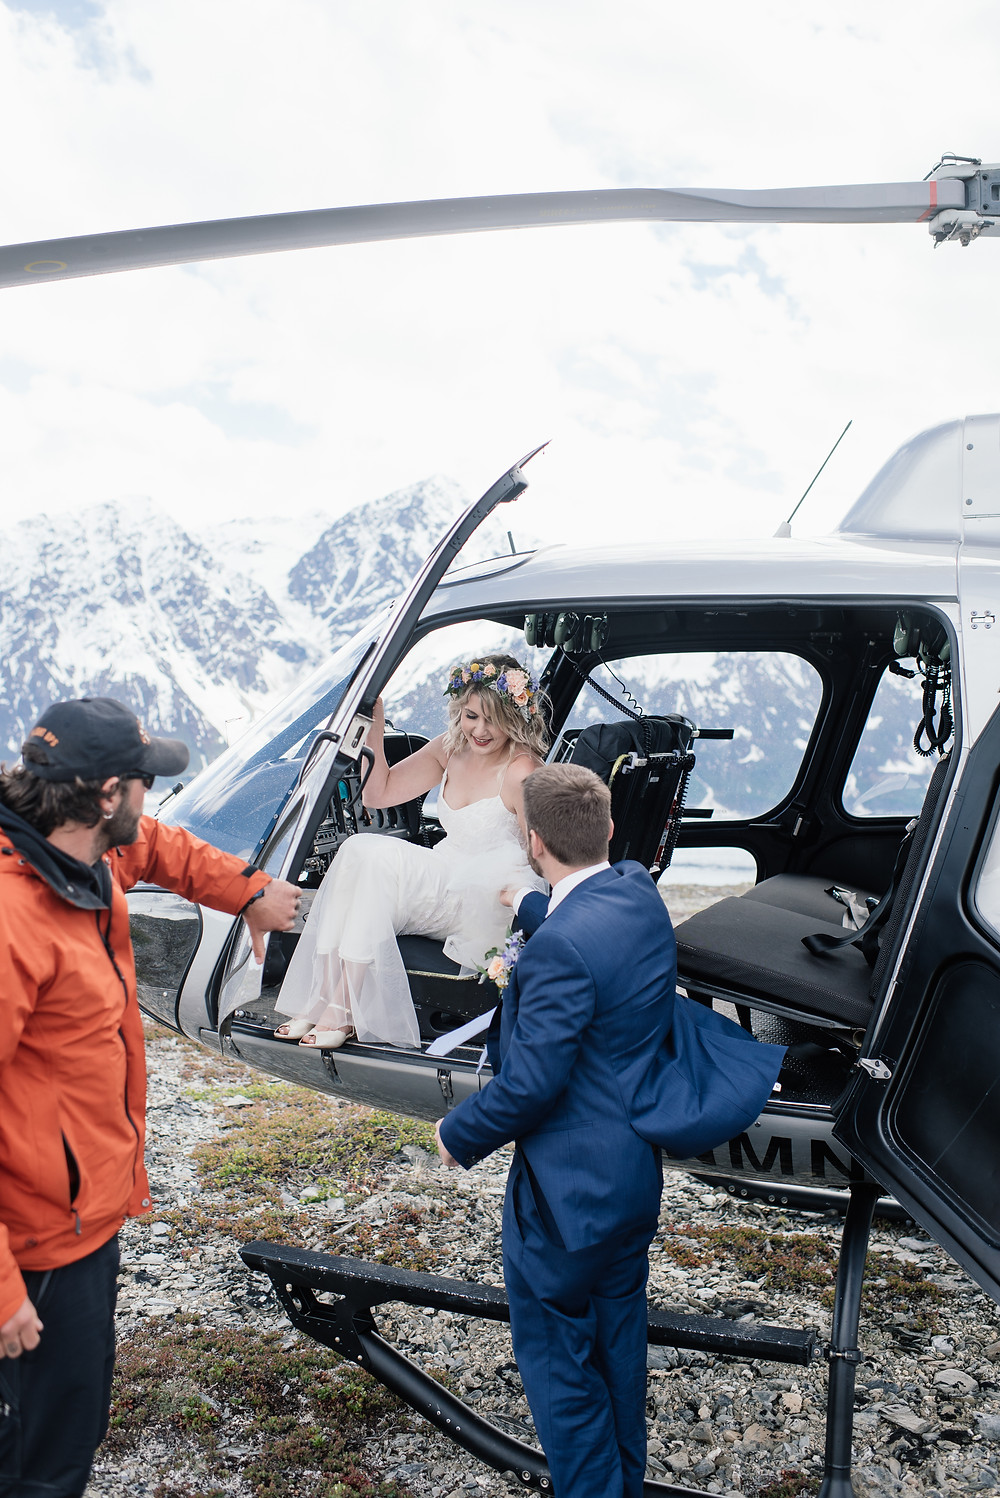 Remote Alaska ceremony location Helicopter ceremony, Elope to Alaska with guests, private and remote location